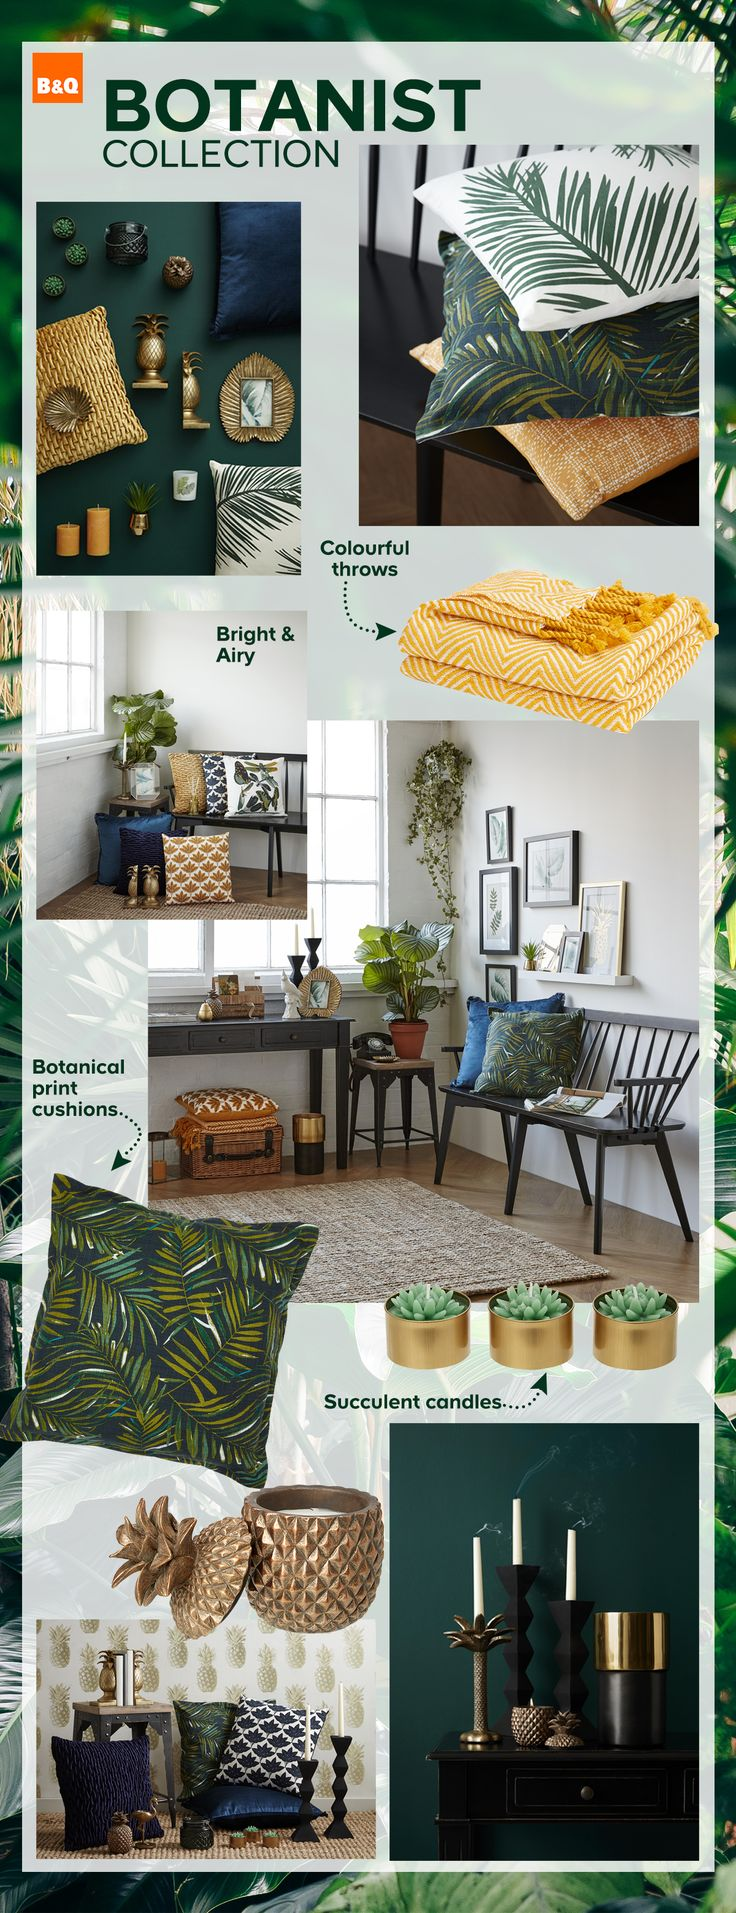 Introducing our NEW Botanist decor collection - Bring the outside in and be at home with nature this spring. House plants, palm leaf prints and bold, rich tones are the must haves for embracing the new botanical trend this season.